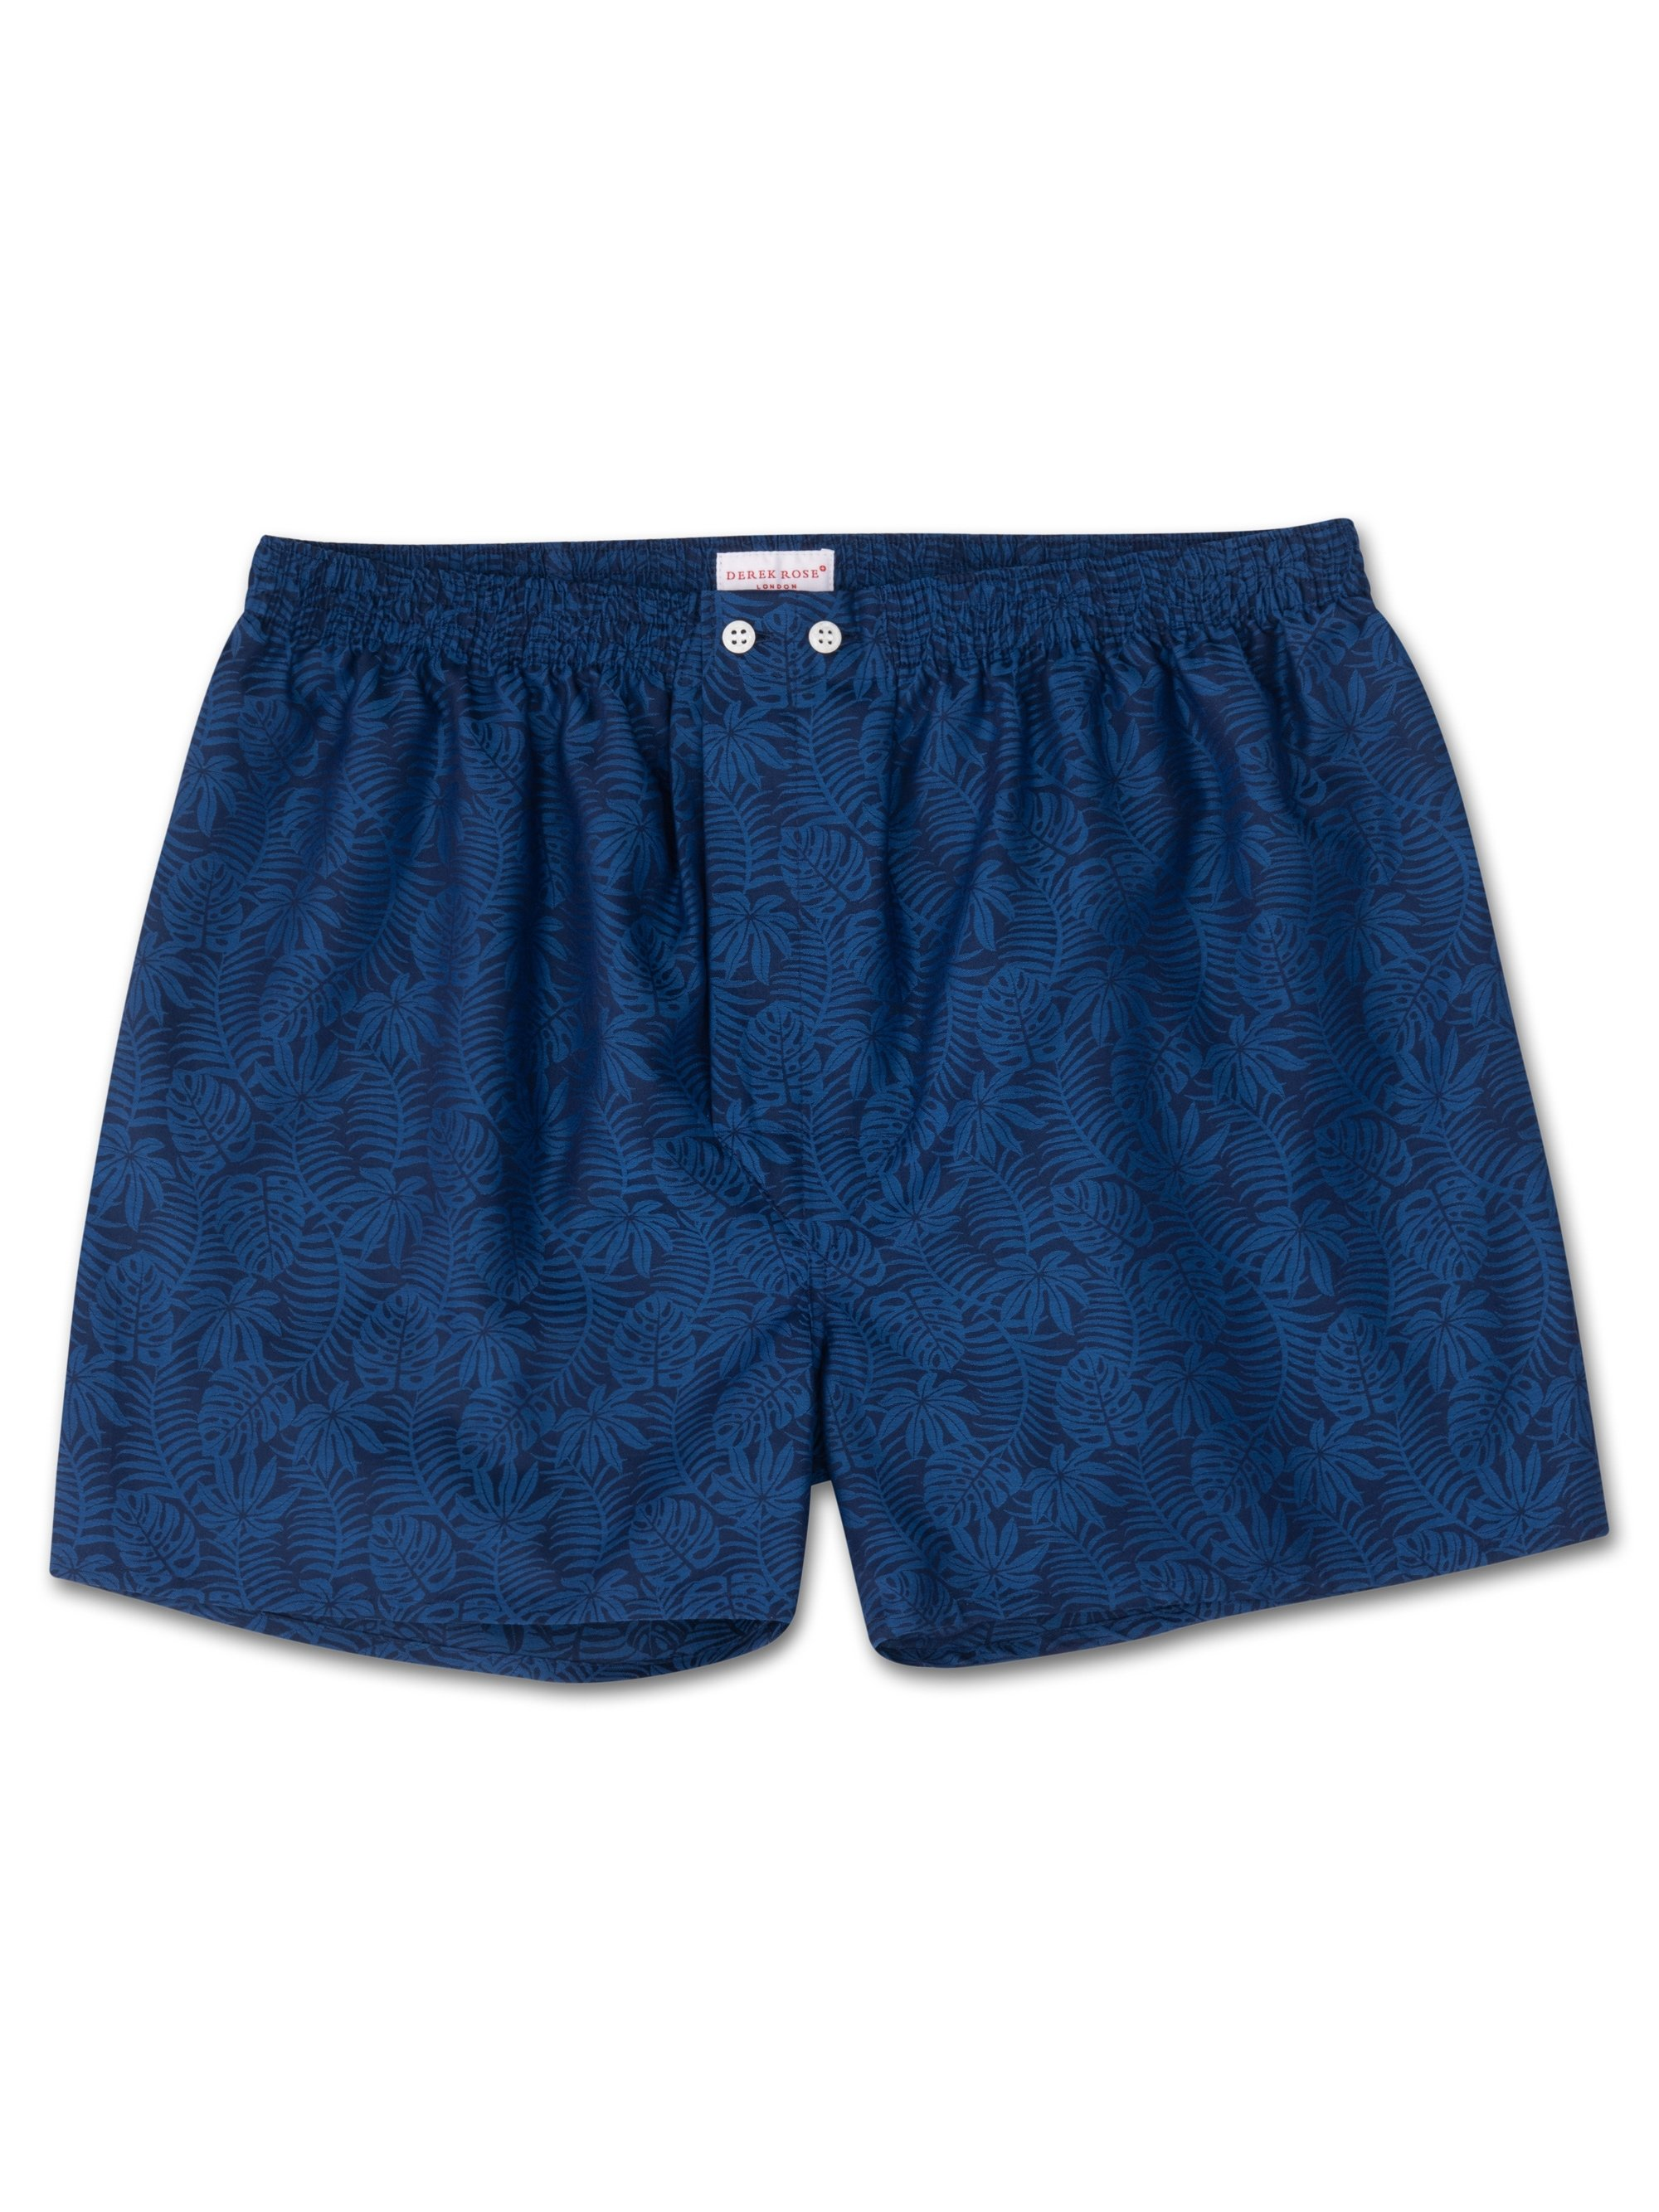 Men's Classic Fit Boxer Shorts Paris 15 Cotton Jacquard Navy